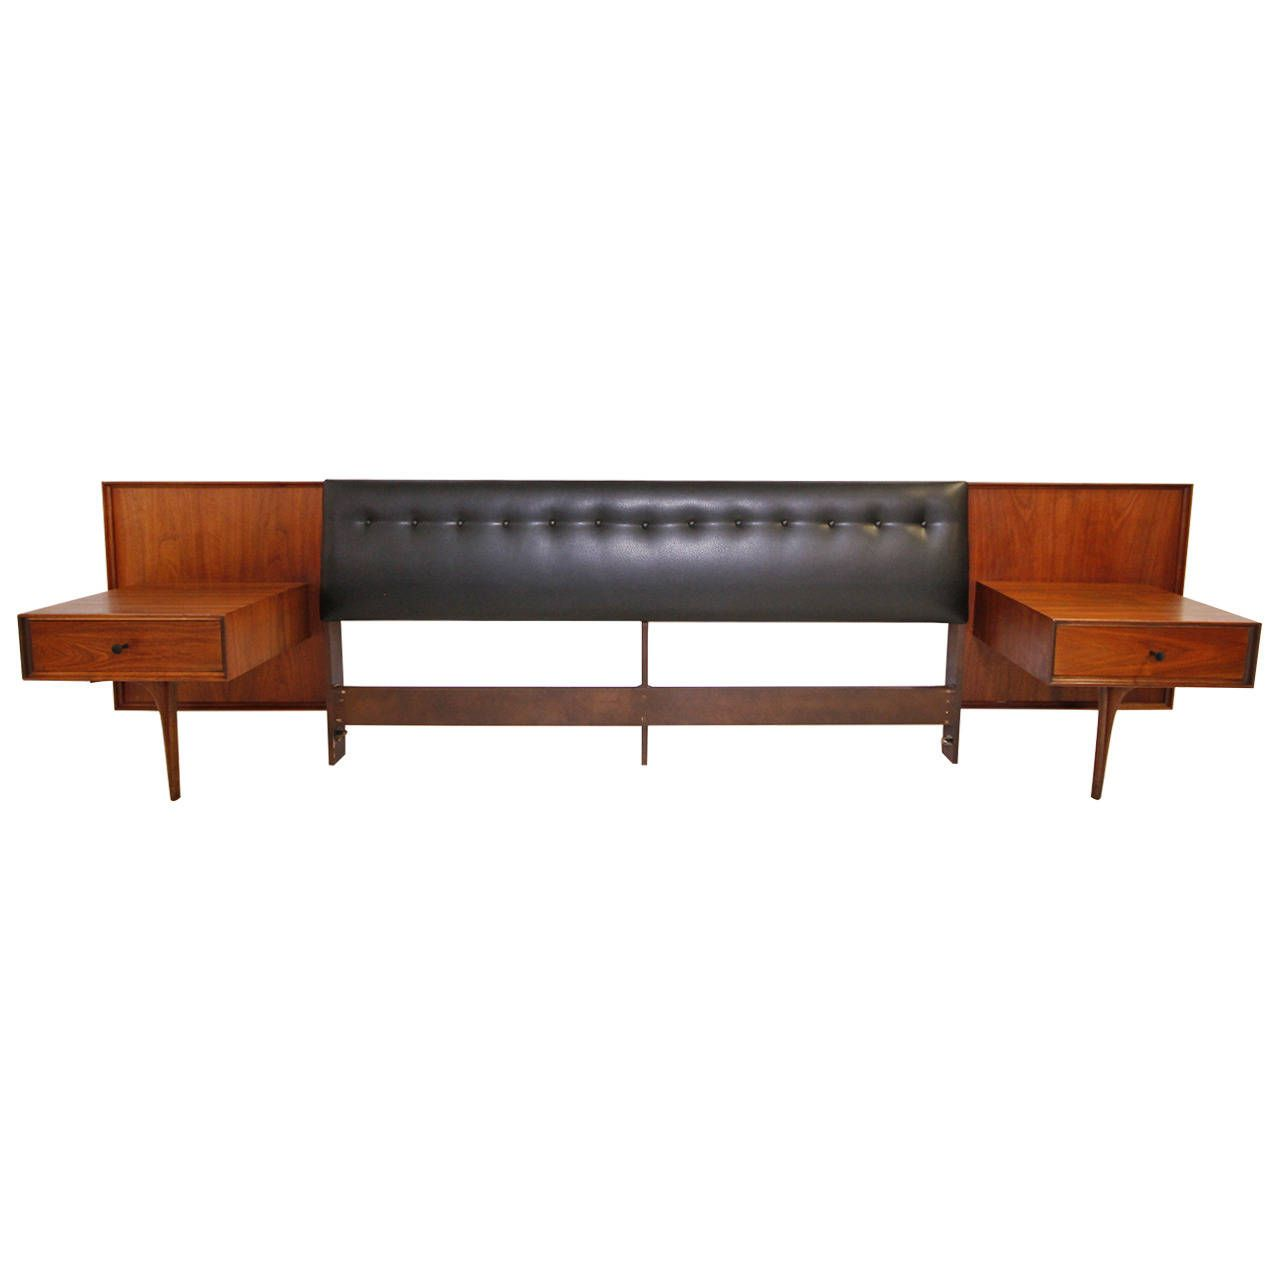 Modern Bed Stand Stunning Mid Century Modern King Headboard With Floating